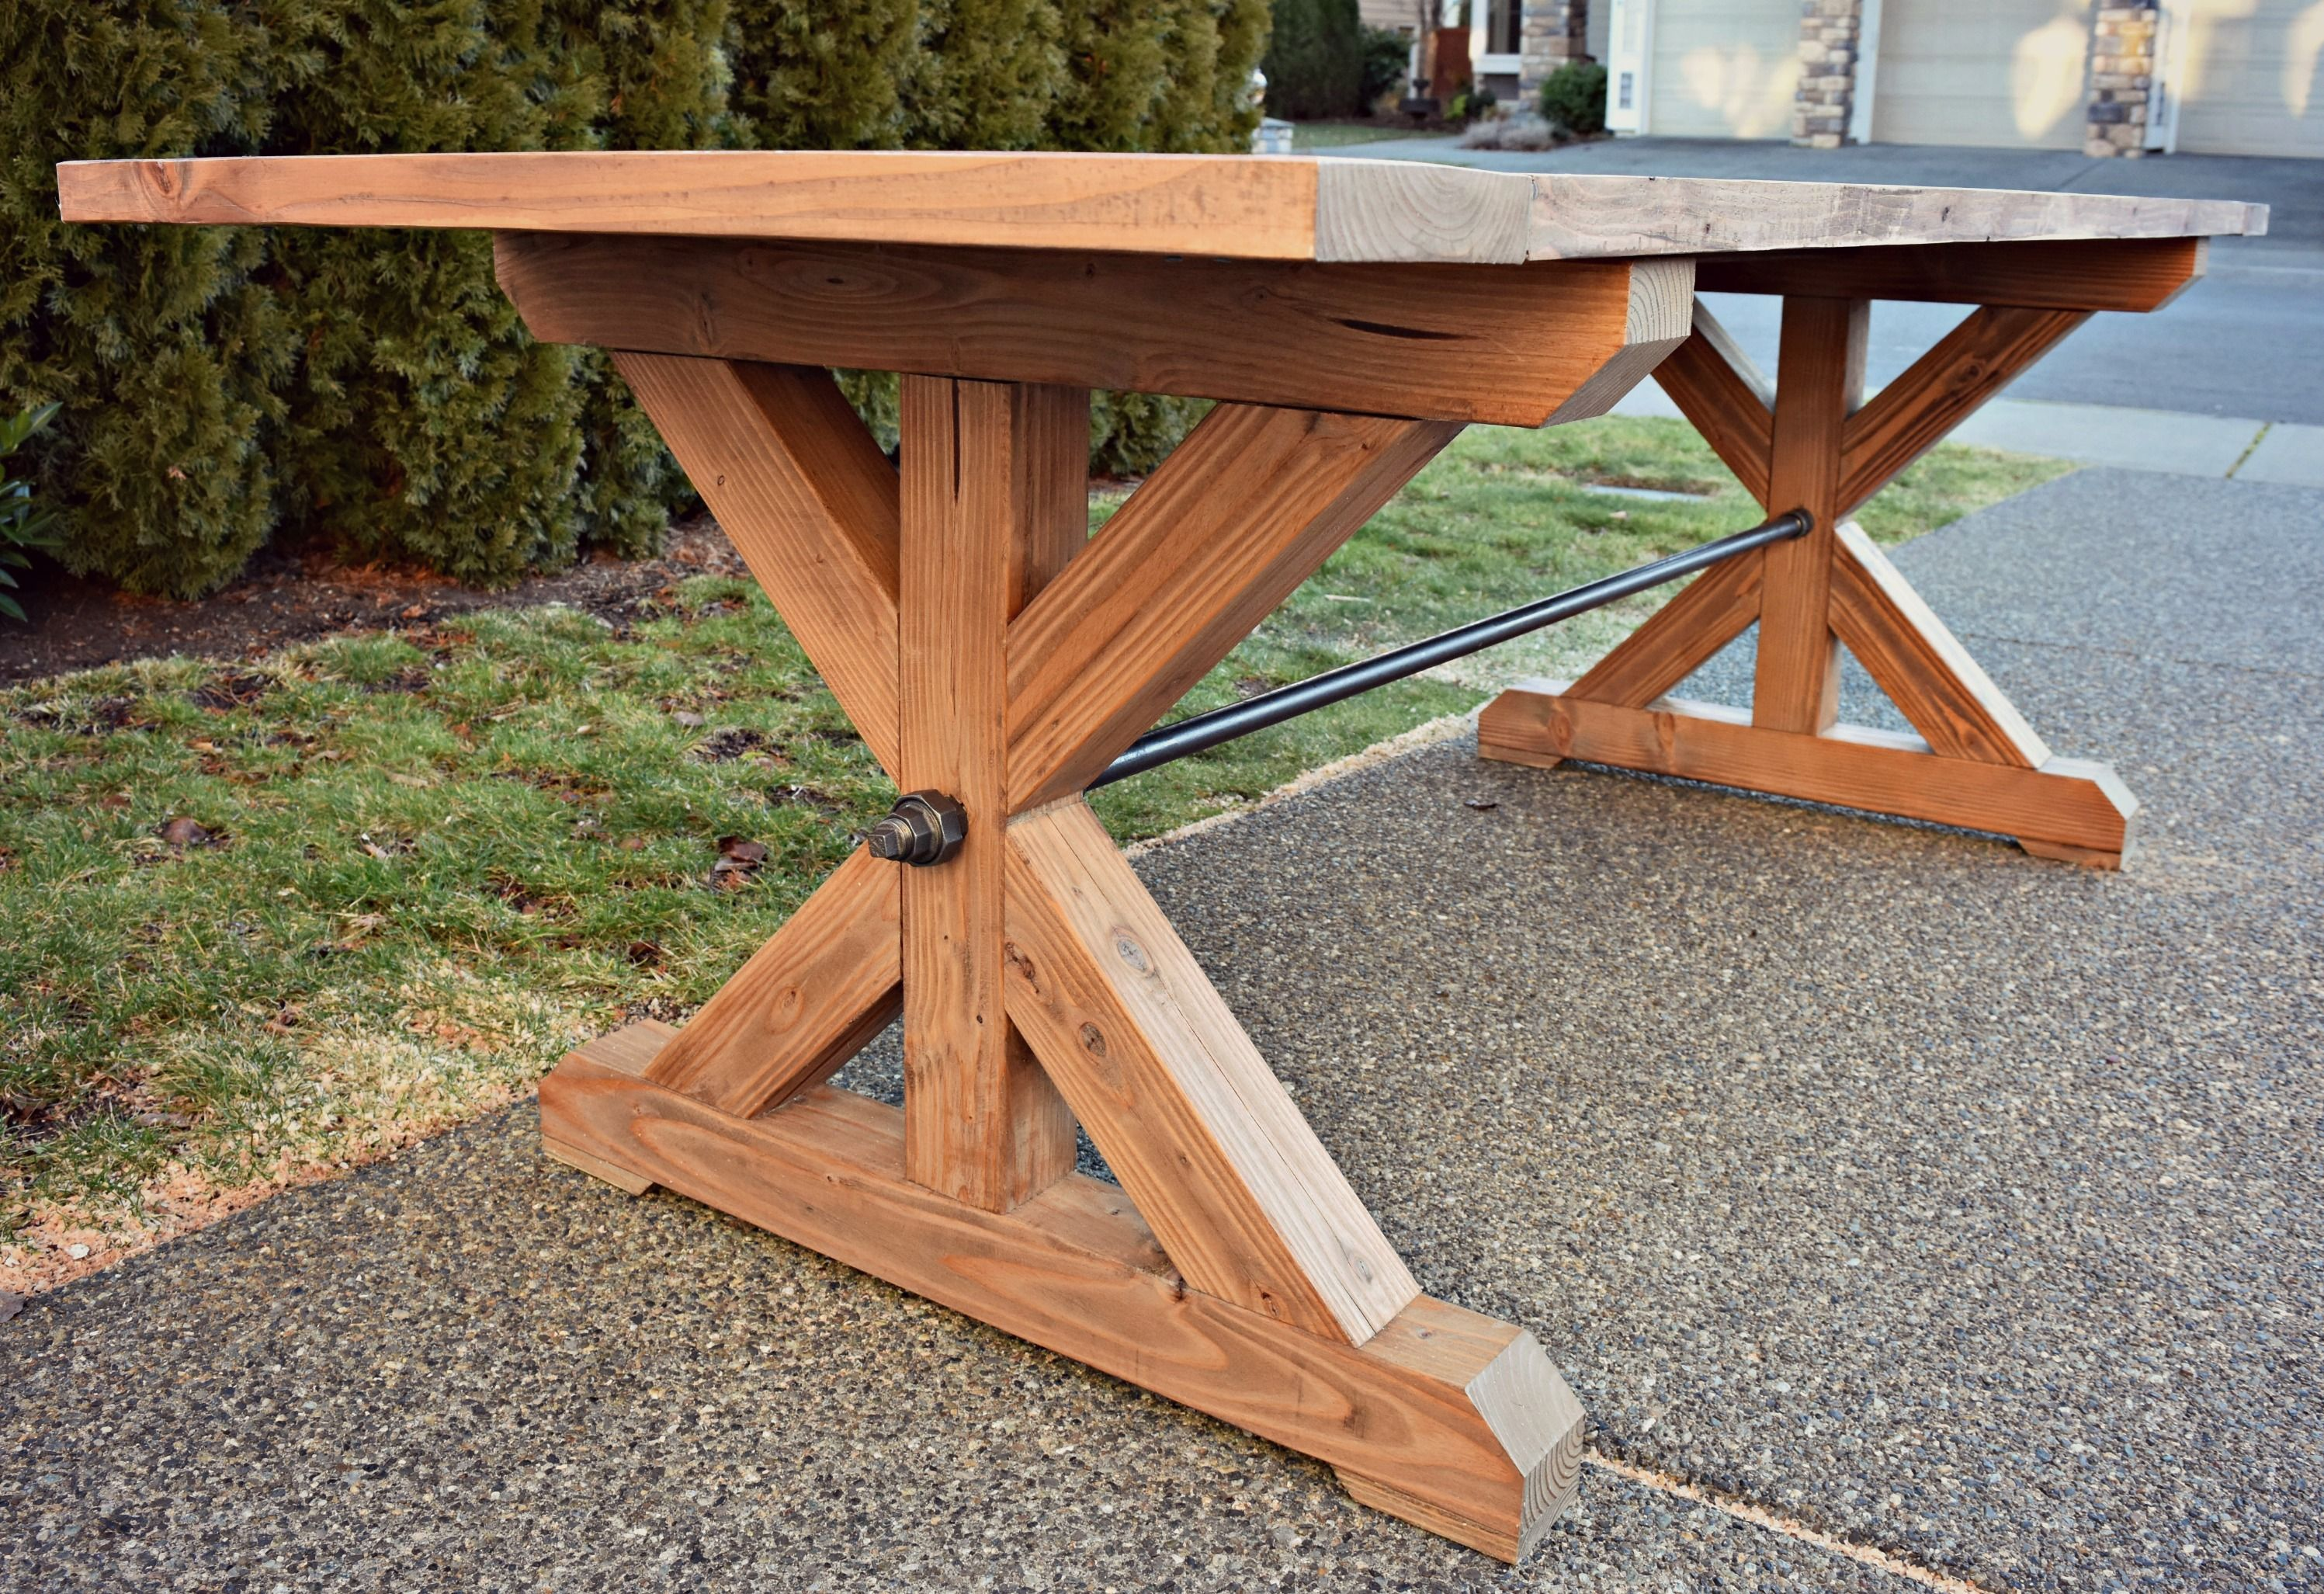 The Ironbolt Table Do It Yourself Home Projects From Ana White Cedar Table Dinning Table Diy Farmhouse Table